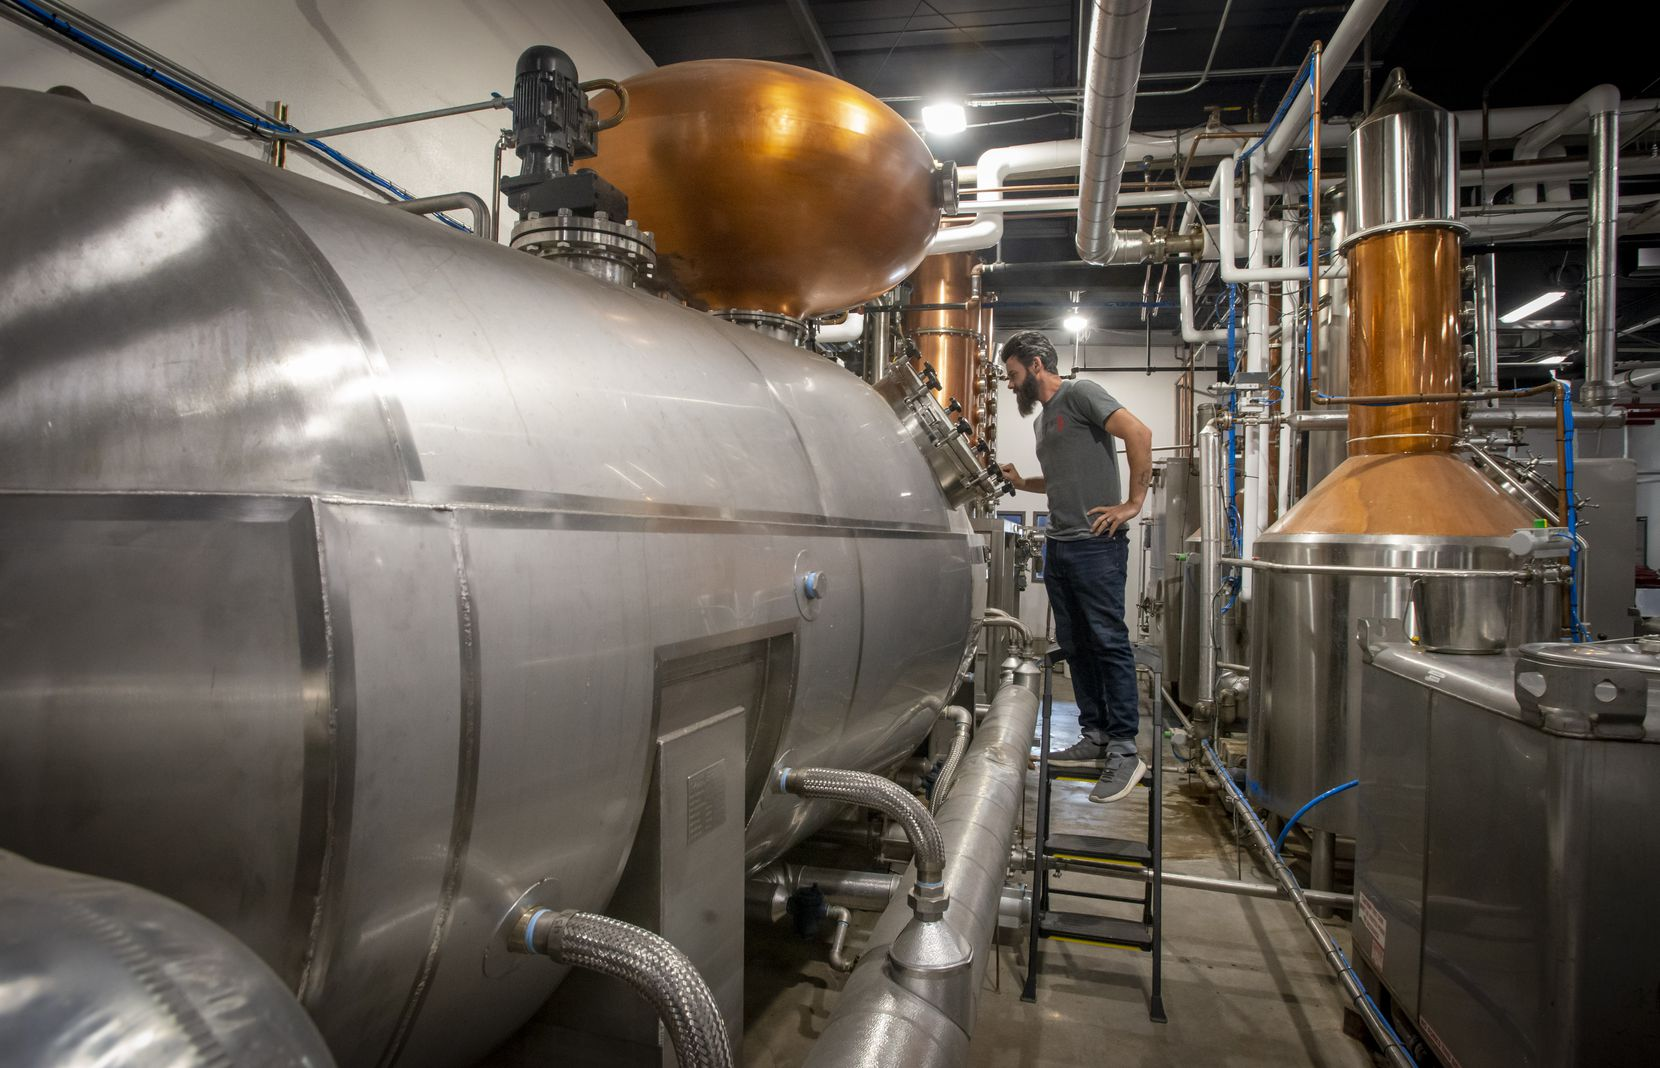 James Williams checks the still at Bendt Distilling Co. on Nov. 13, 2019 in Lewisville, Texas.